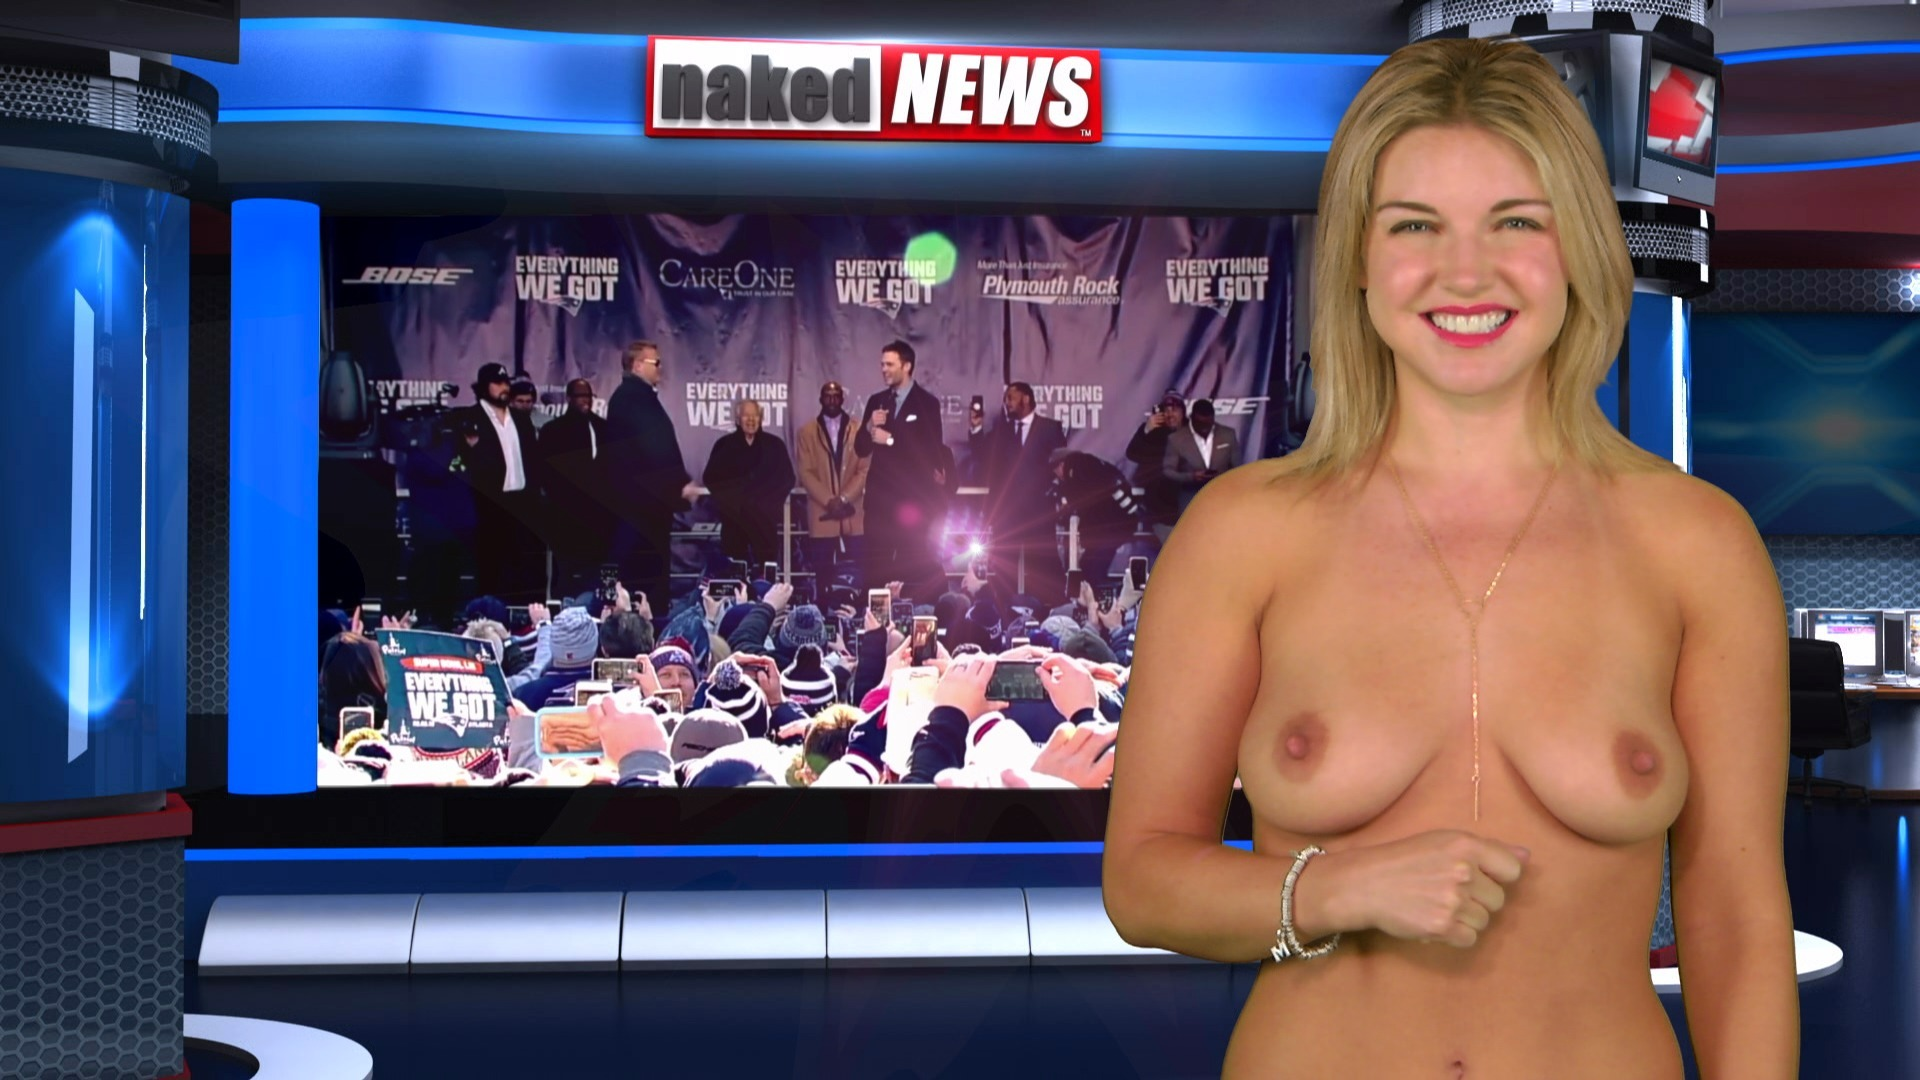 Naked broadcasters